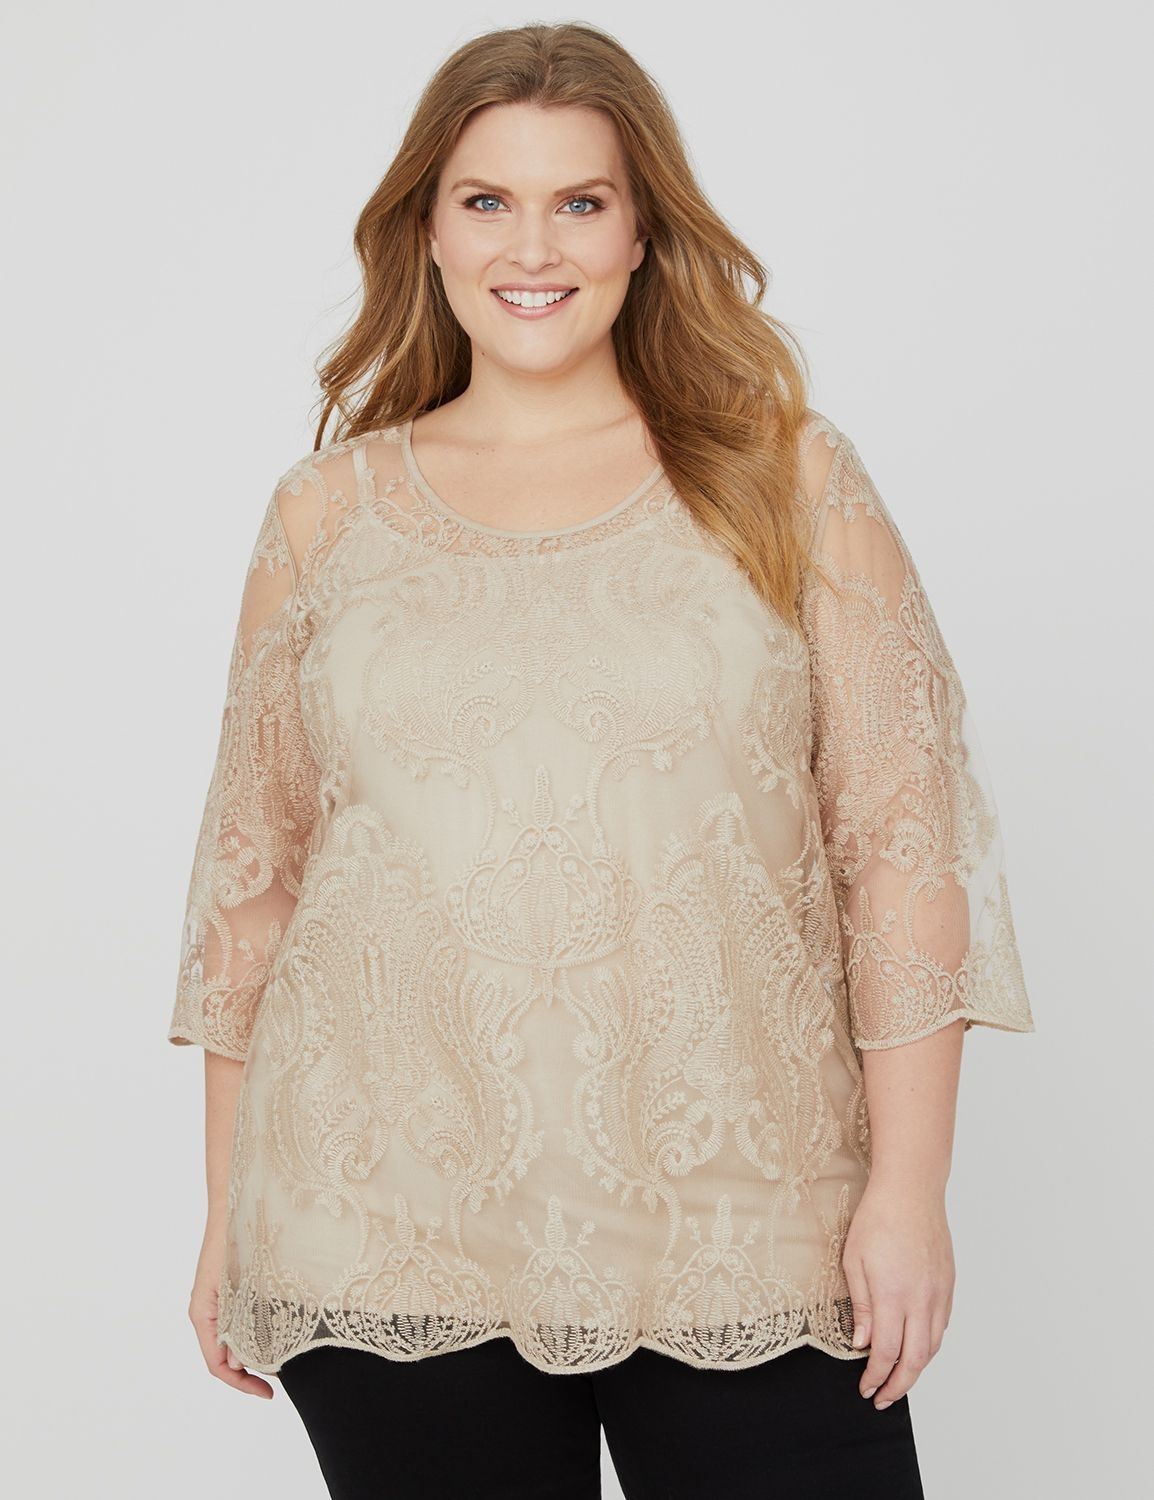 Soft Afterglow Top 1091394 Nuance Mesh Embroidered Tun MP-300103680